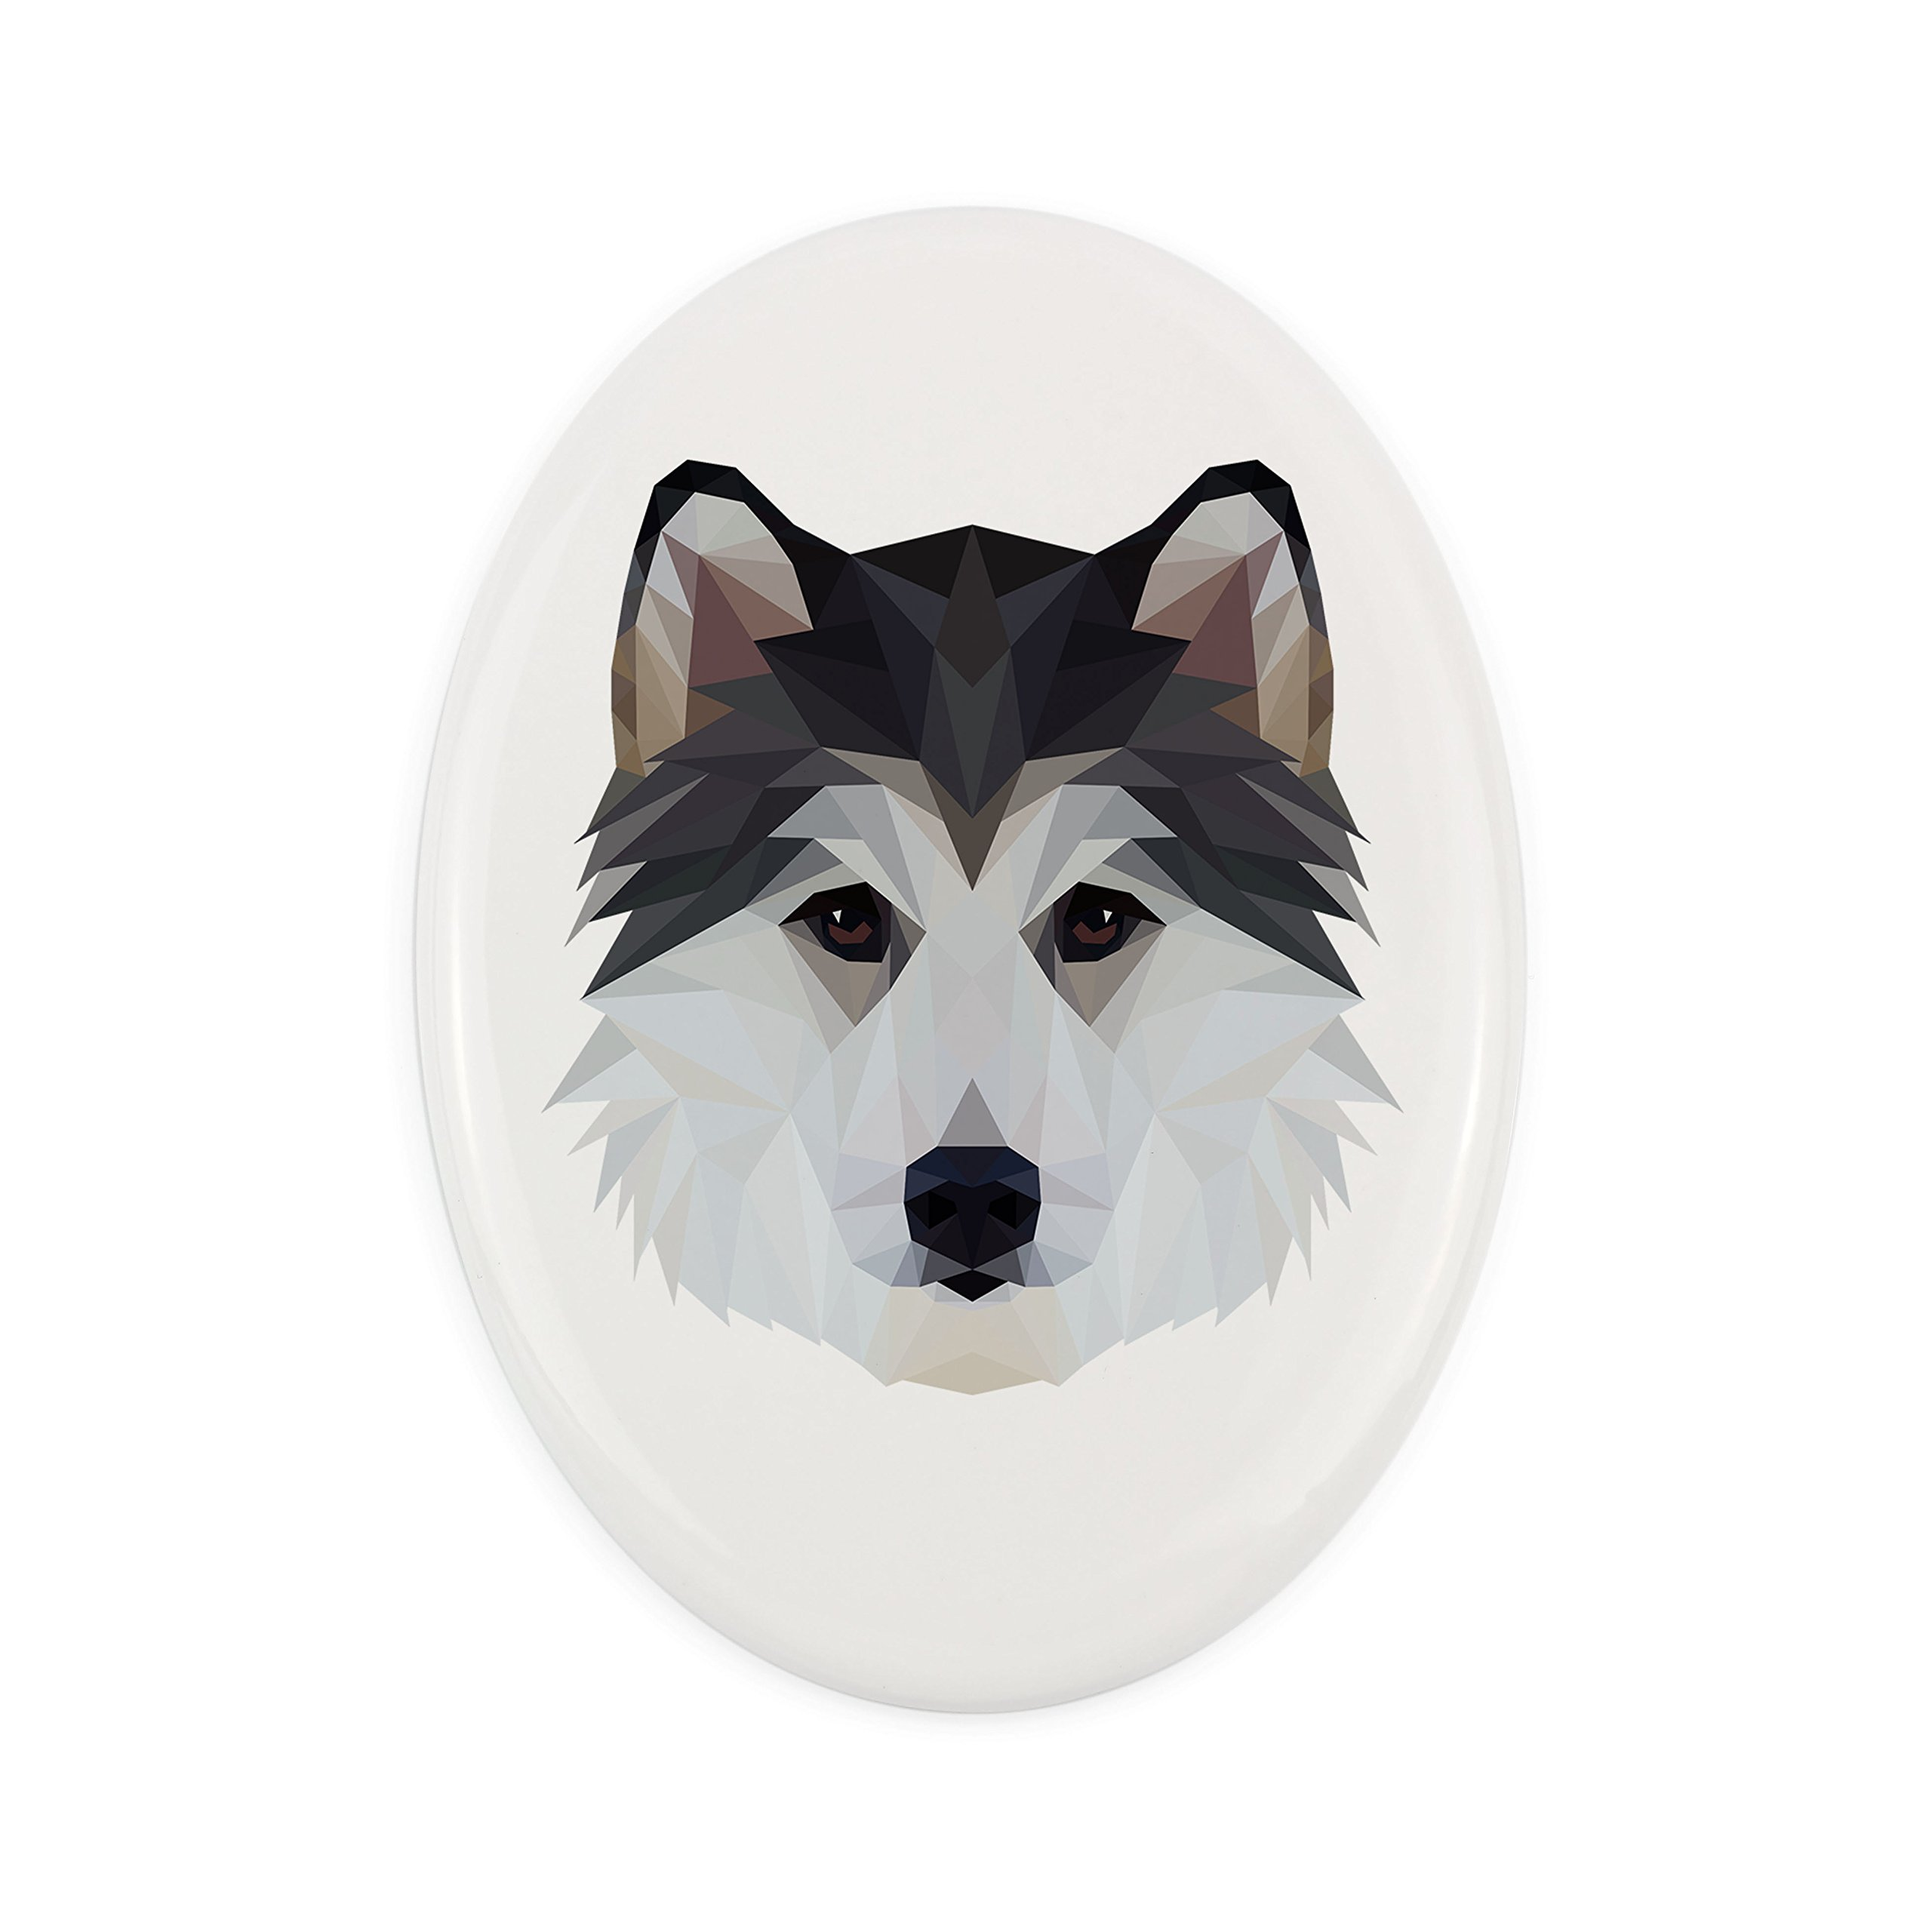 ArtDog Ltd. Siberian Husky, Tombstone ceramic plaque with an image of a dog, geometric